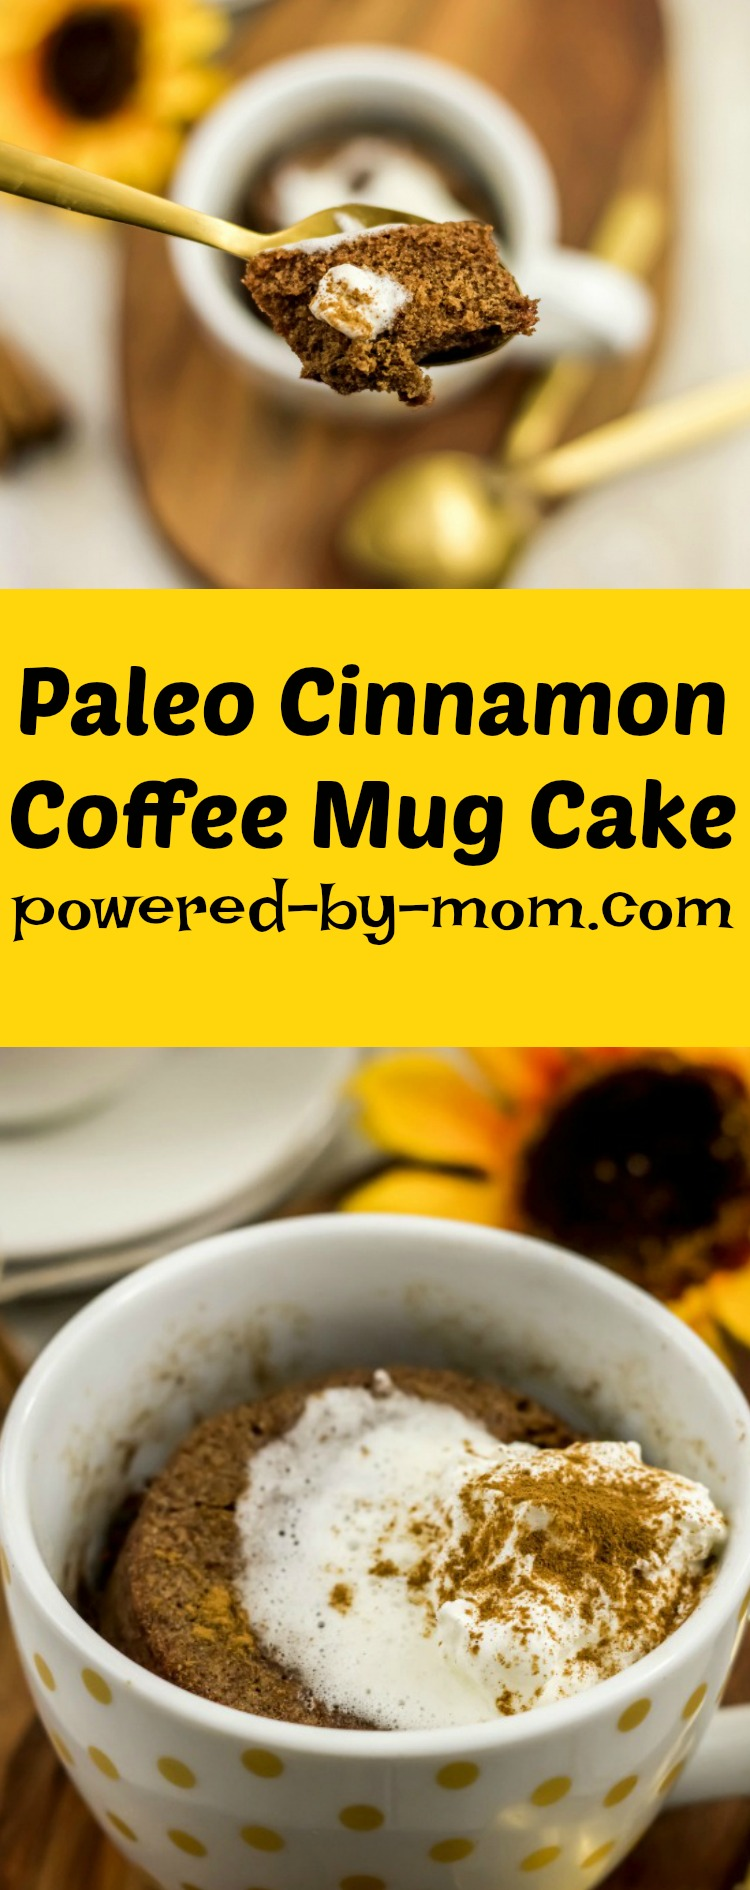 Paleo Cinnamon Coffee Mug Cake